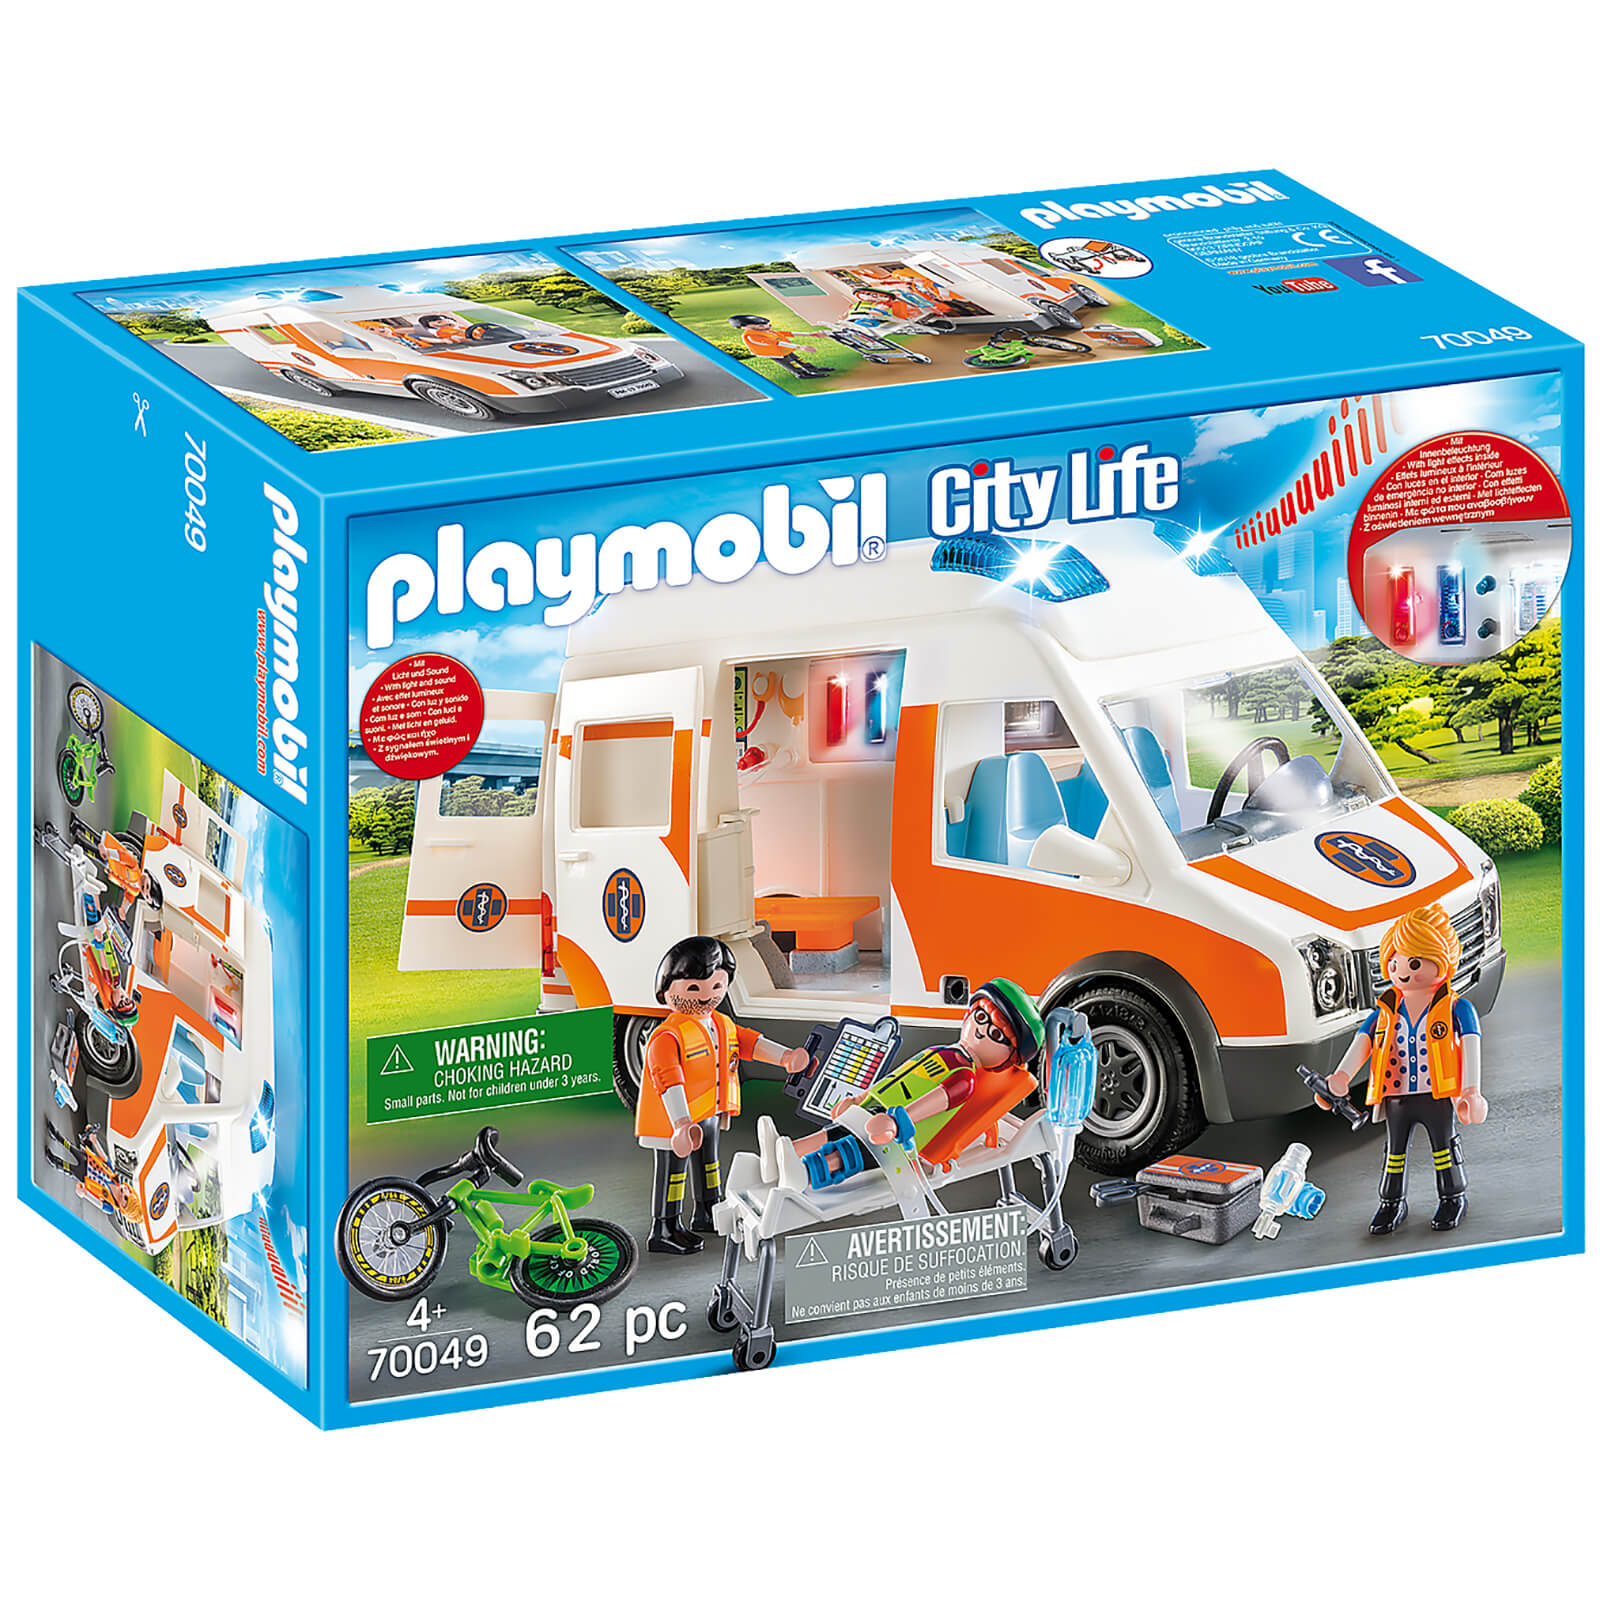 Image of Playmobil City Life Ambulance with Lights and Sound (70049)